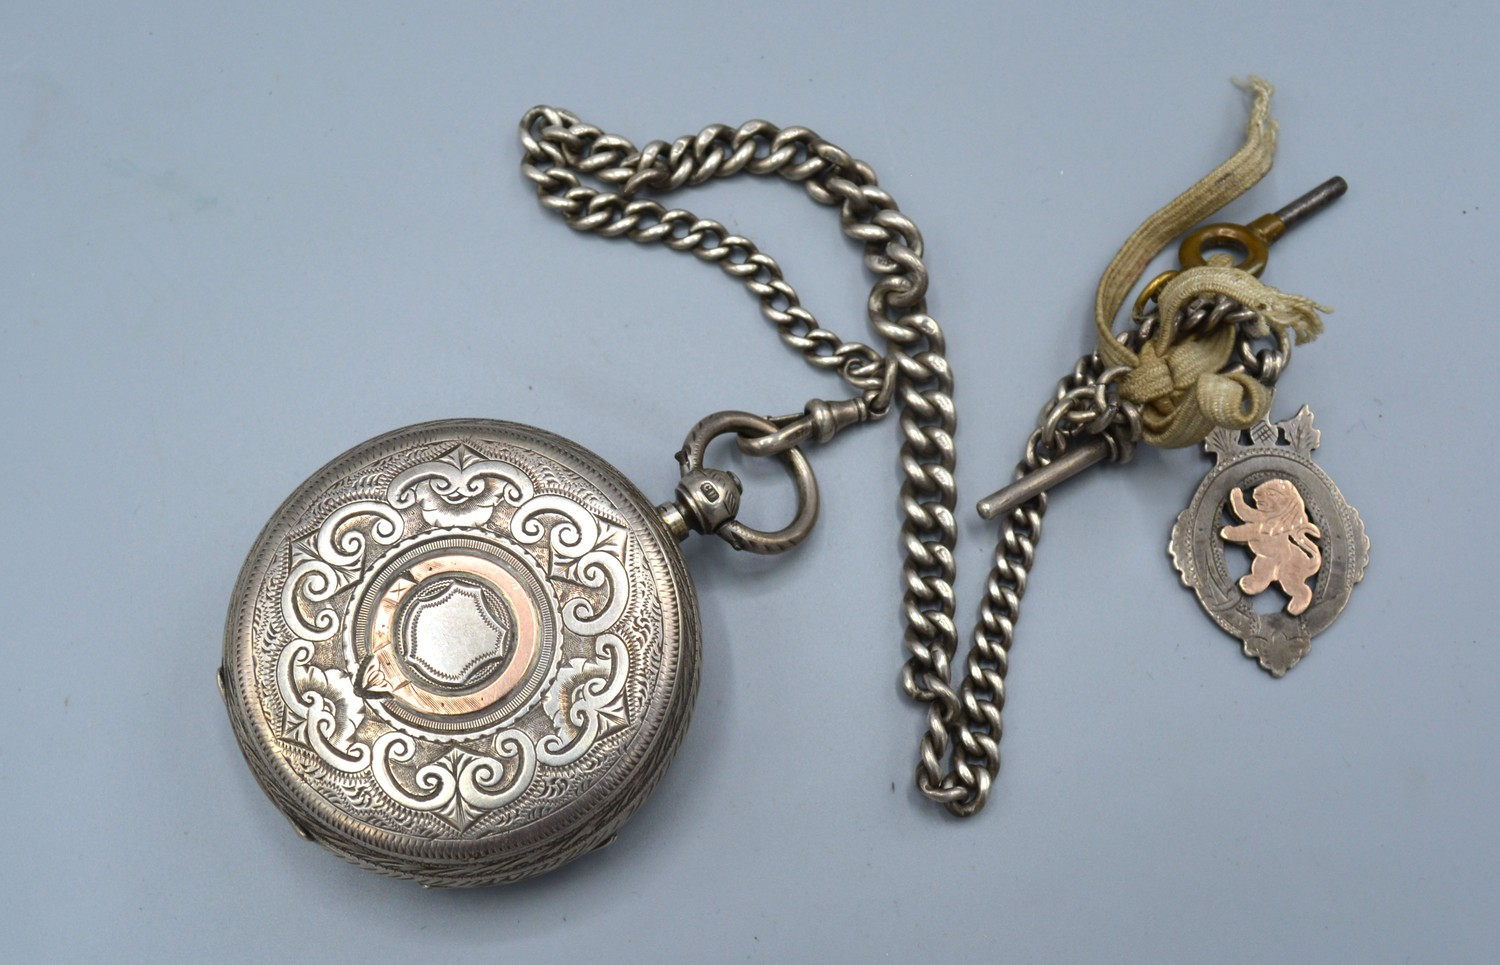 A Chester silver cased pocket watch, the engraved dial with gold mounts and with silver cur link - Image 2 of 2